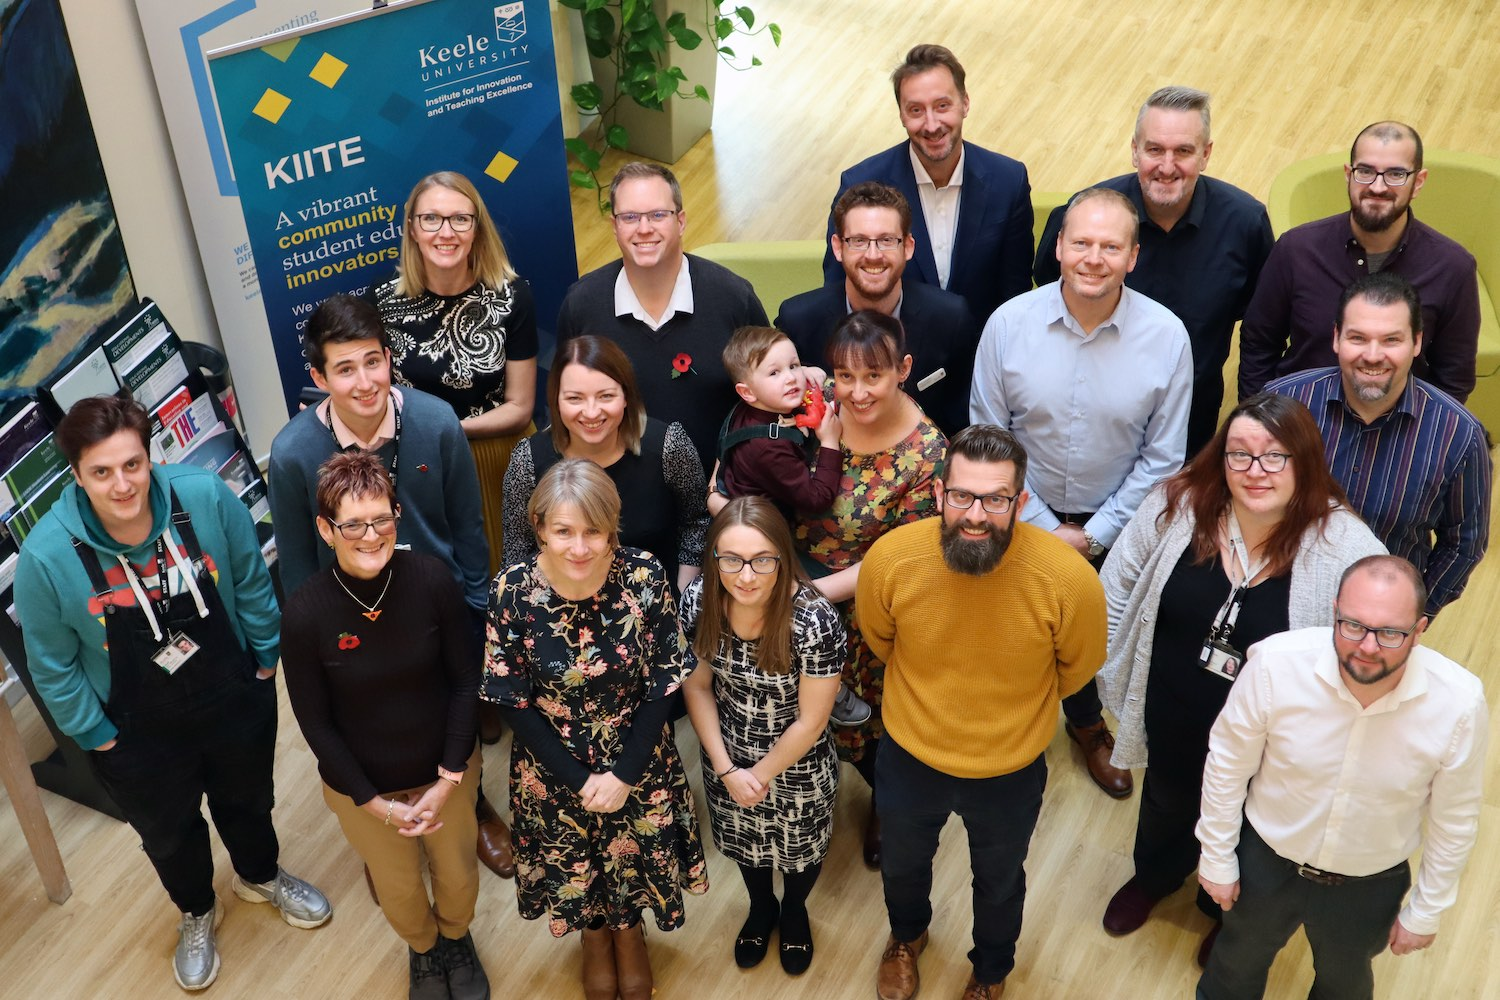 Kiite Team photo